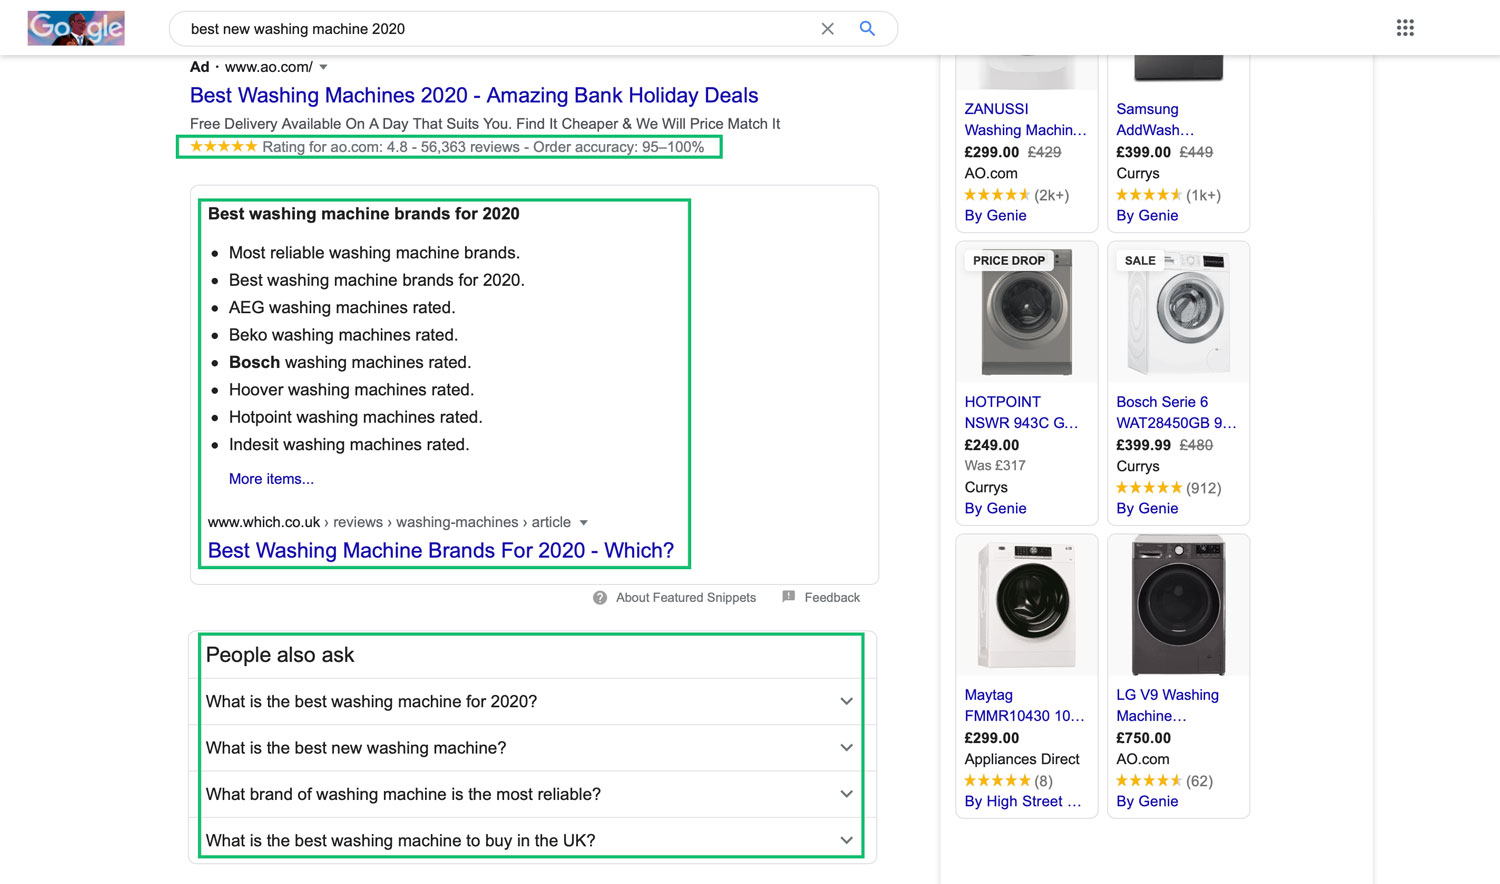 An image highlighting the various types of rich snippets that can be displayed in some Google searches